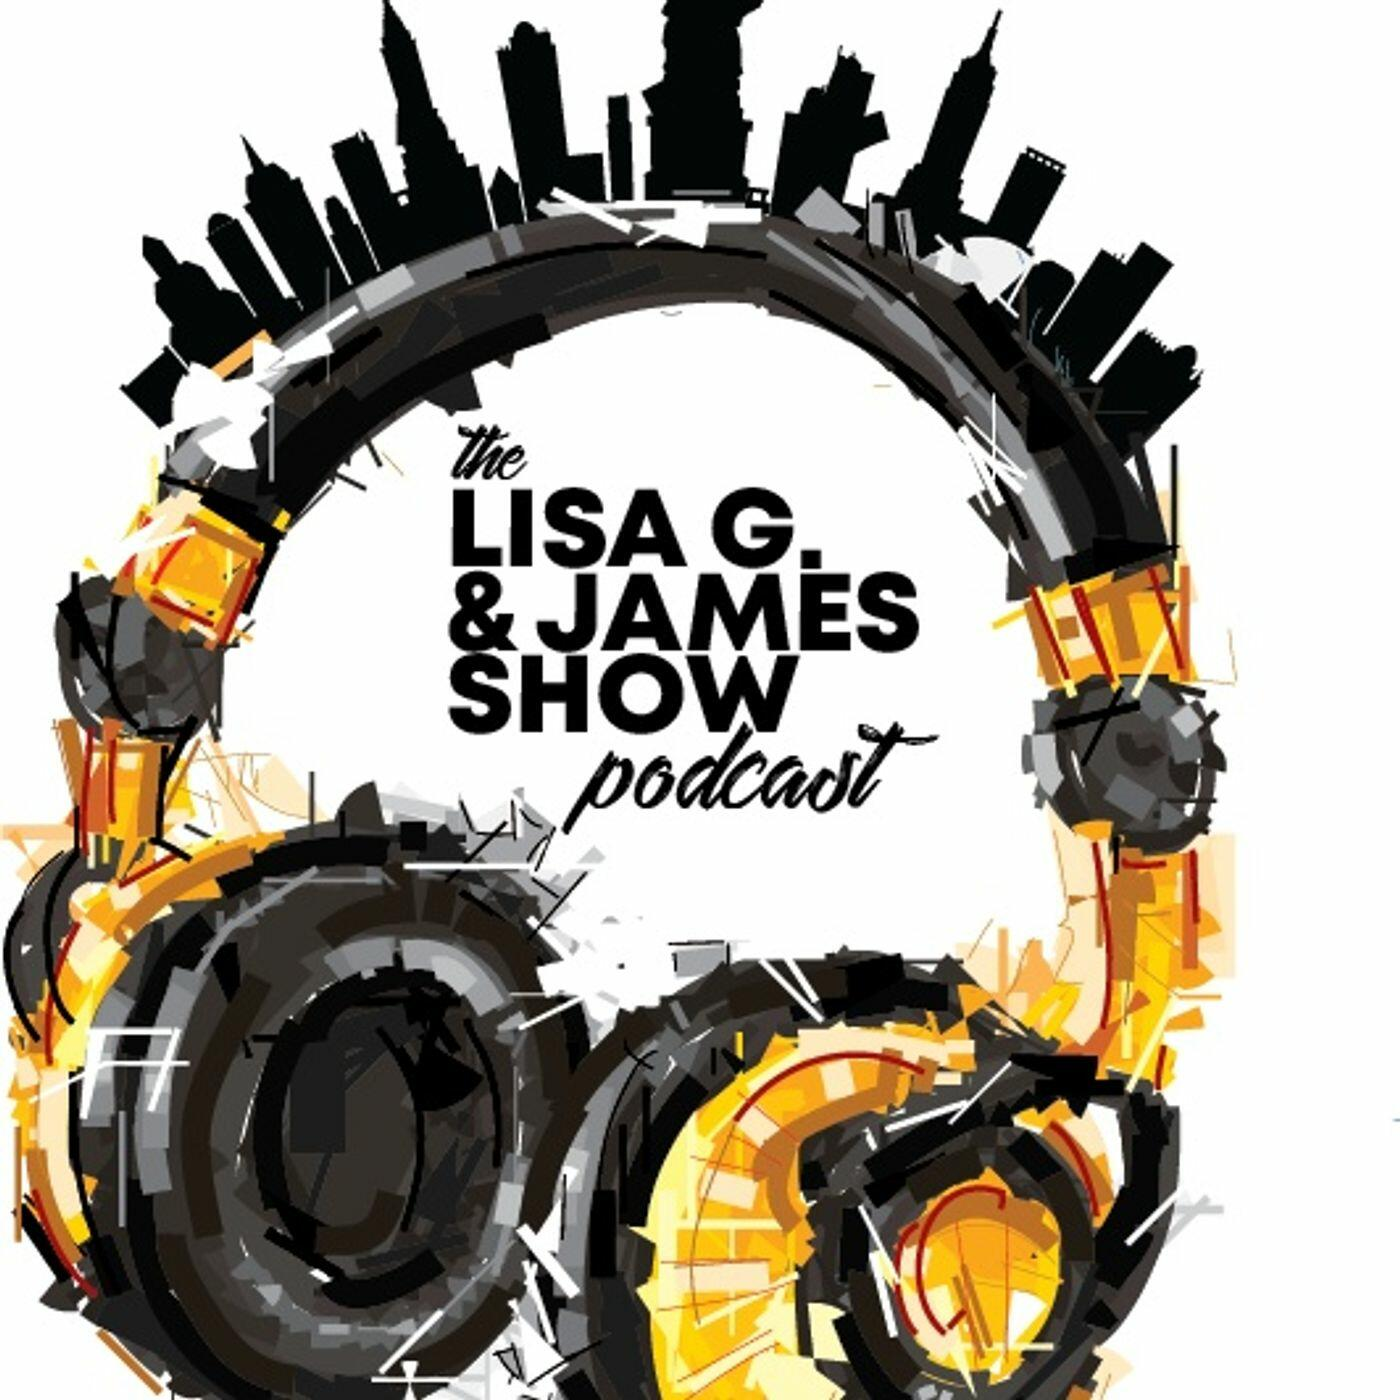 Listen to the Lisa G And James Show Episode - Are Jennifer Aniston And Brad Pitt Really Getting Back Together? on iHeartRadio | iHeartRadio